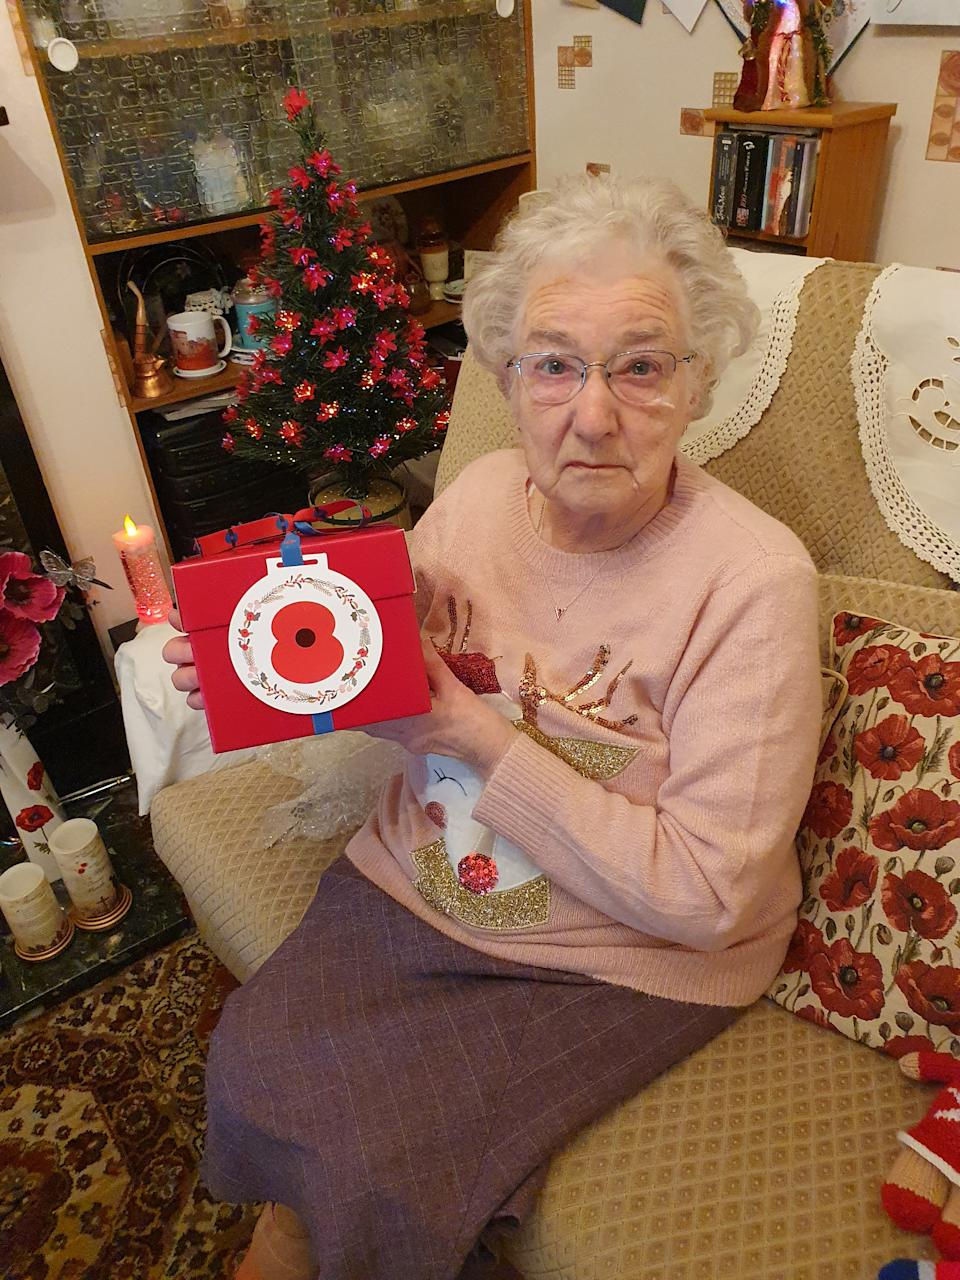 EMBARGOED TO 2200 MONDAY DECEMBER 21 Undated handout photo issued by the Royal British Legion of Vera Parnaby, 81, from Consett, County Durham, who has been a Royal British Legion volunteer for 75 years collecting in excess of £1 million for the Poppy Appeal. Vera was a recipient of a Royal British Legion 'Together at Christmas' gift box containing one of the Christmas puddings made by members of the royal family at Buckingham Palace in 2019. The Royal British Legion has gifted 99 Christmas puddings mixed by four generations of the Royal Family to members of the Armed Forces community across the UK and overseas as part of its 'Together at Christmas' initiative.